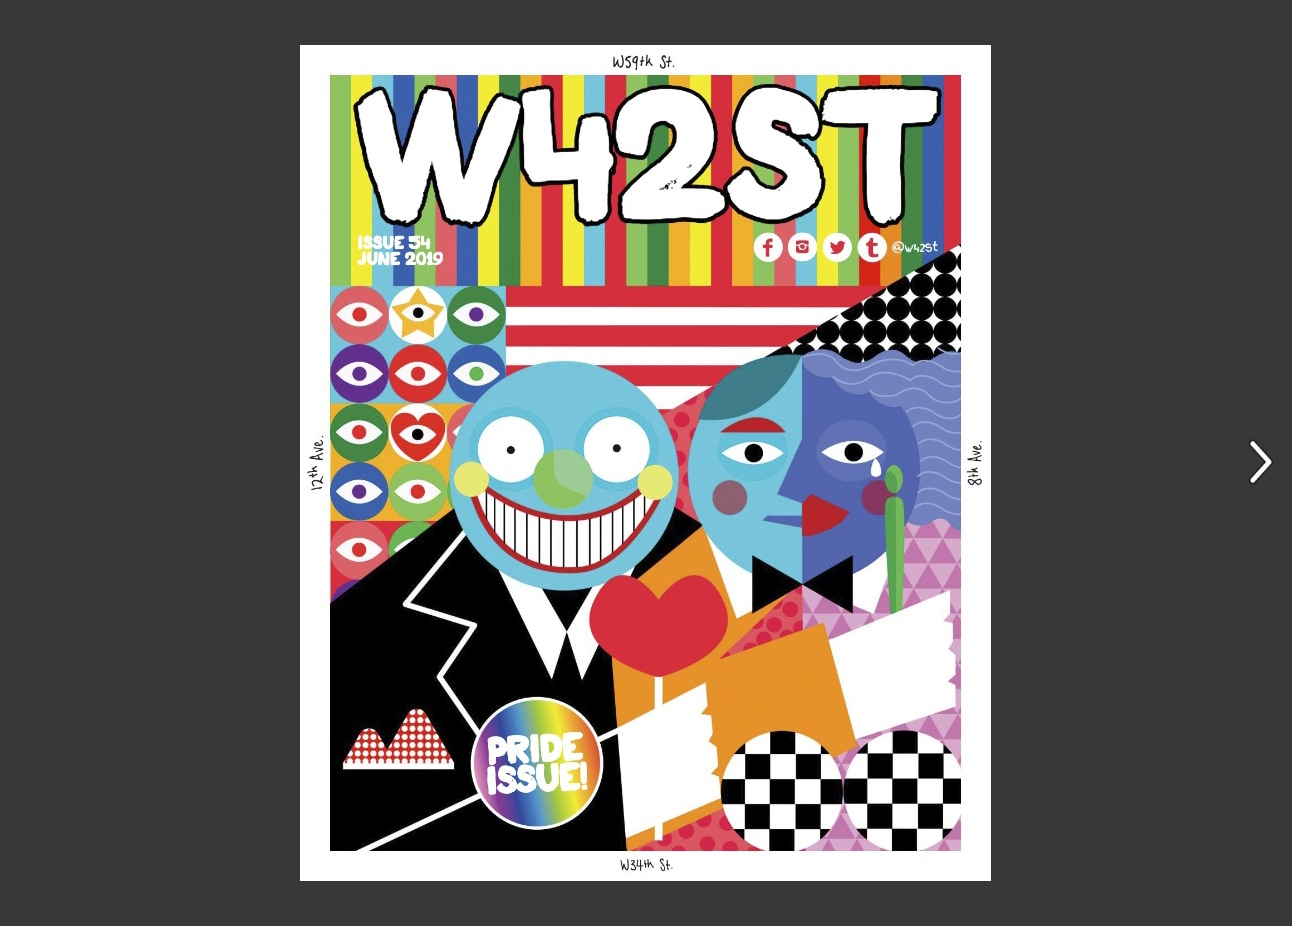 w42st-issue-54-the-pride-issue-by-w42st-magazine-issuu-2019-09-26-07-13-03.jpg